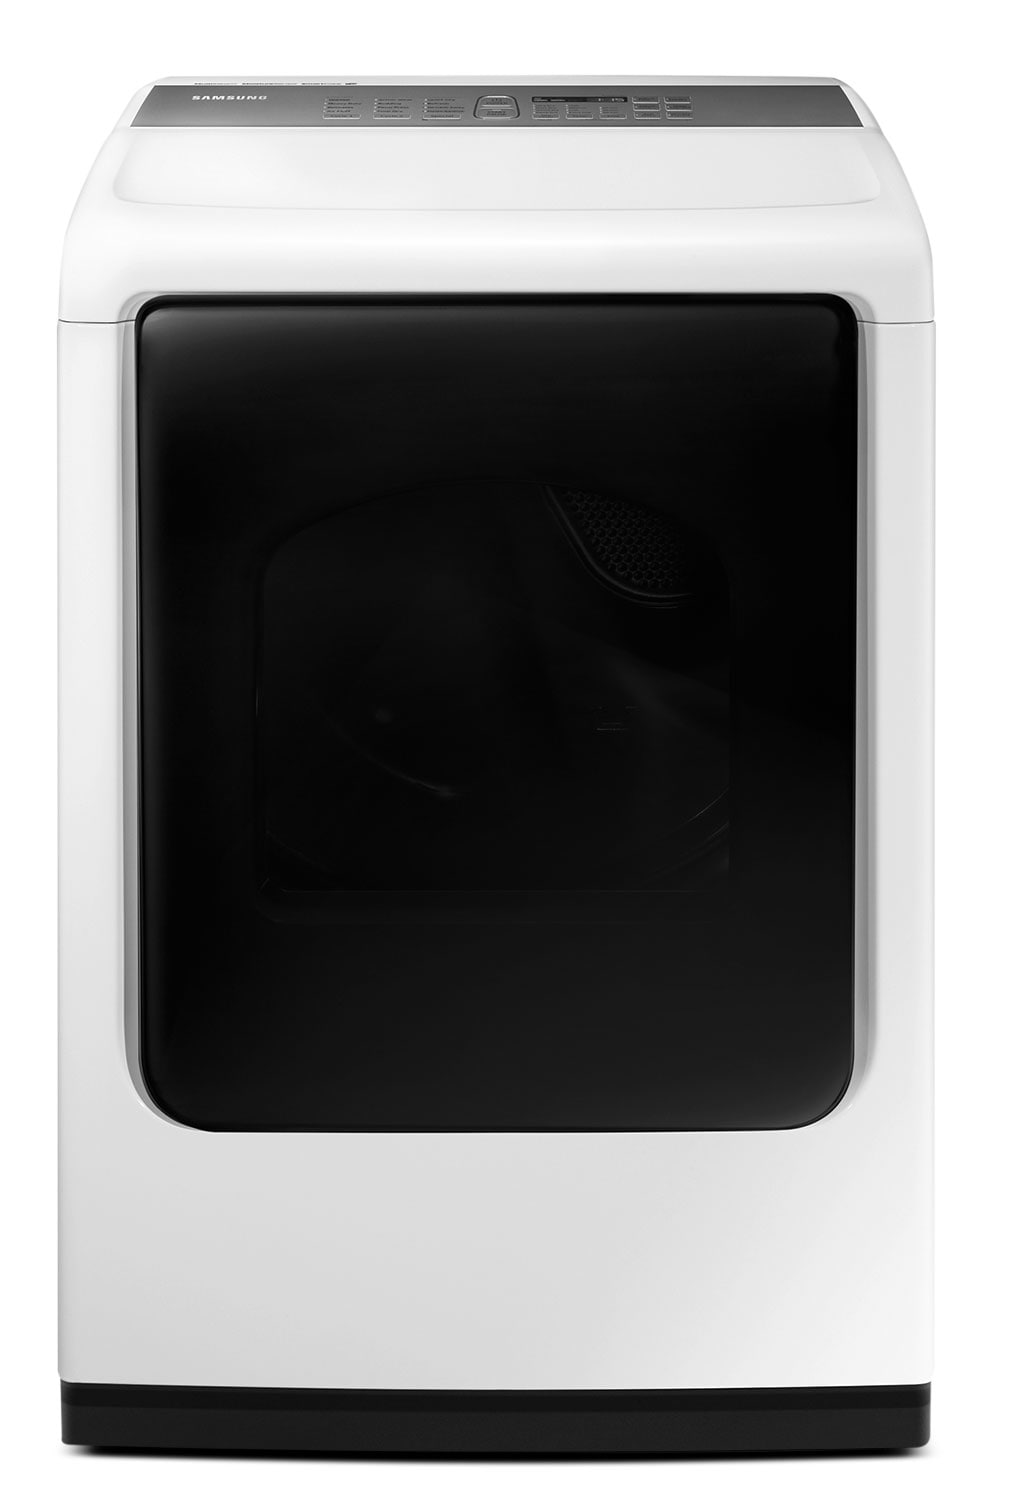 Samsung 7.4 Cu. Ft. Electric Dryer – DV45K7600EW/AC